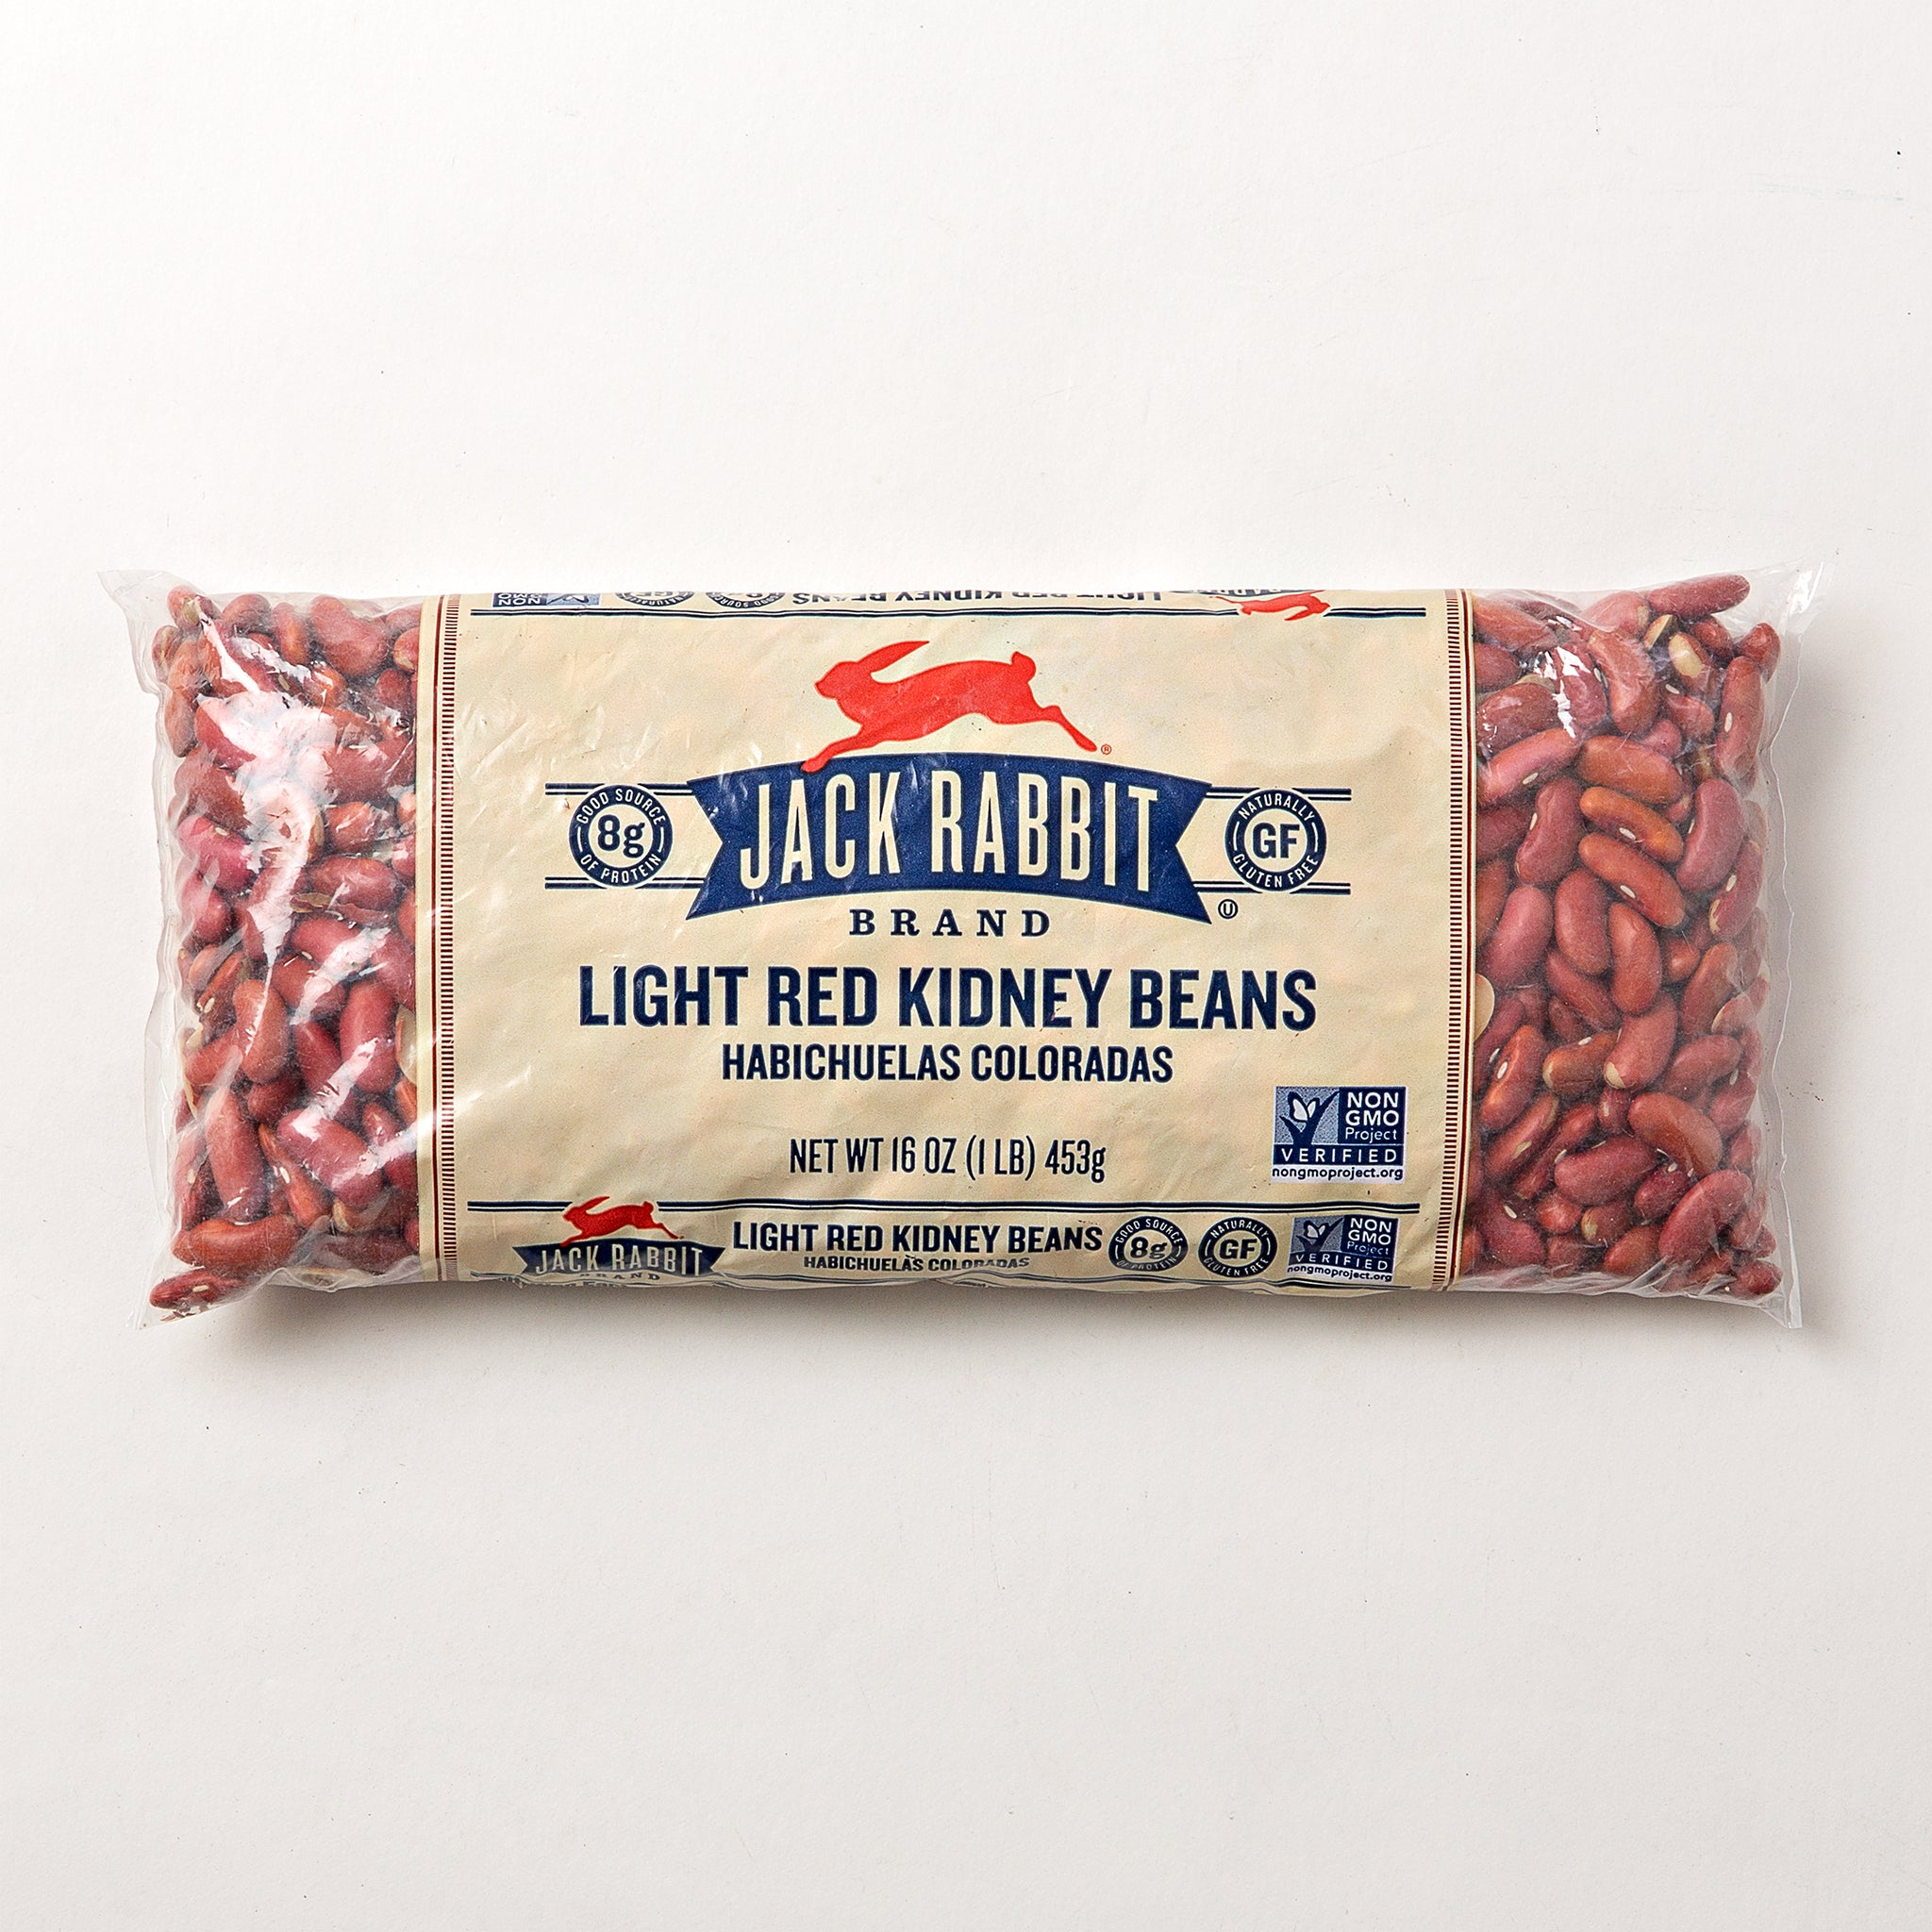 Jack Rabbit Light Red Kidney Beans